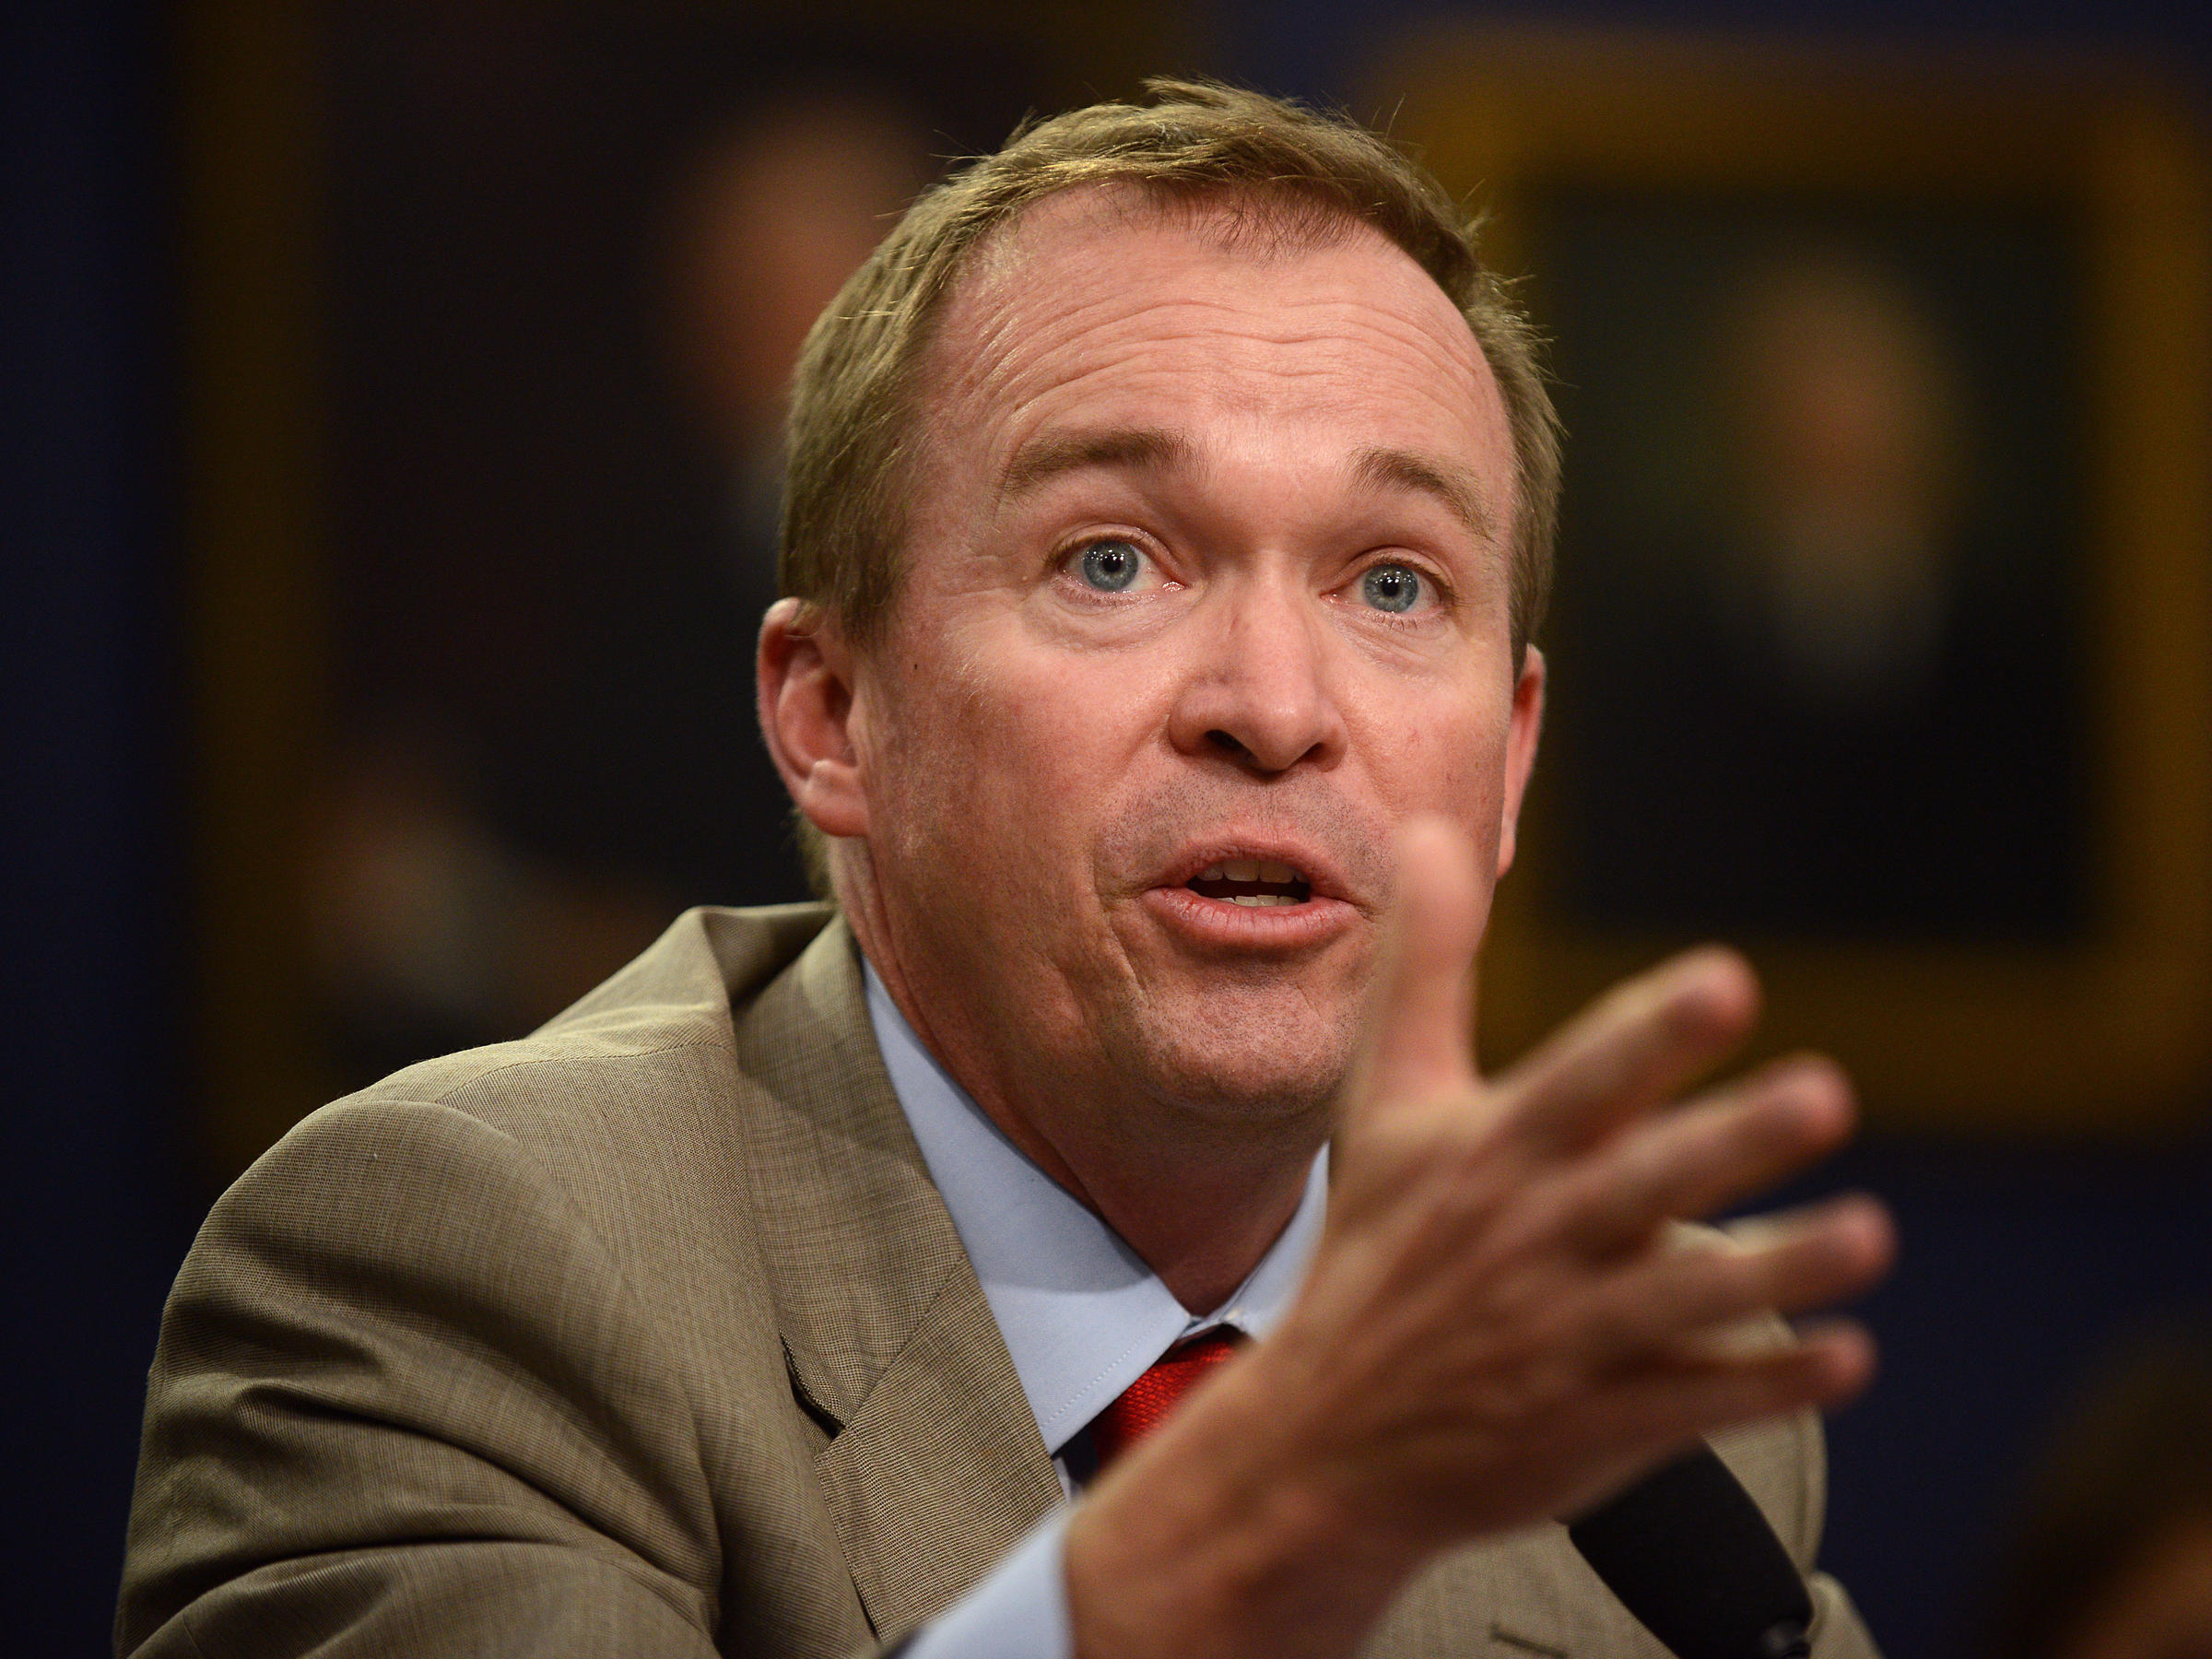 Mick Mulvaney's CFPB seems to be going conspicuously soft on payday lenders